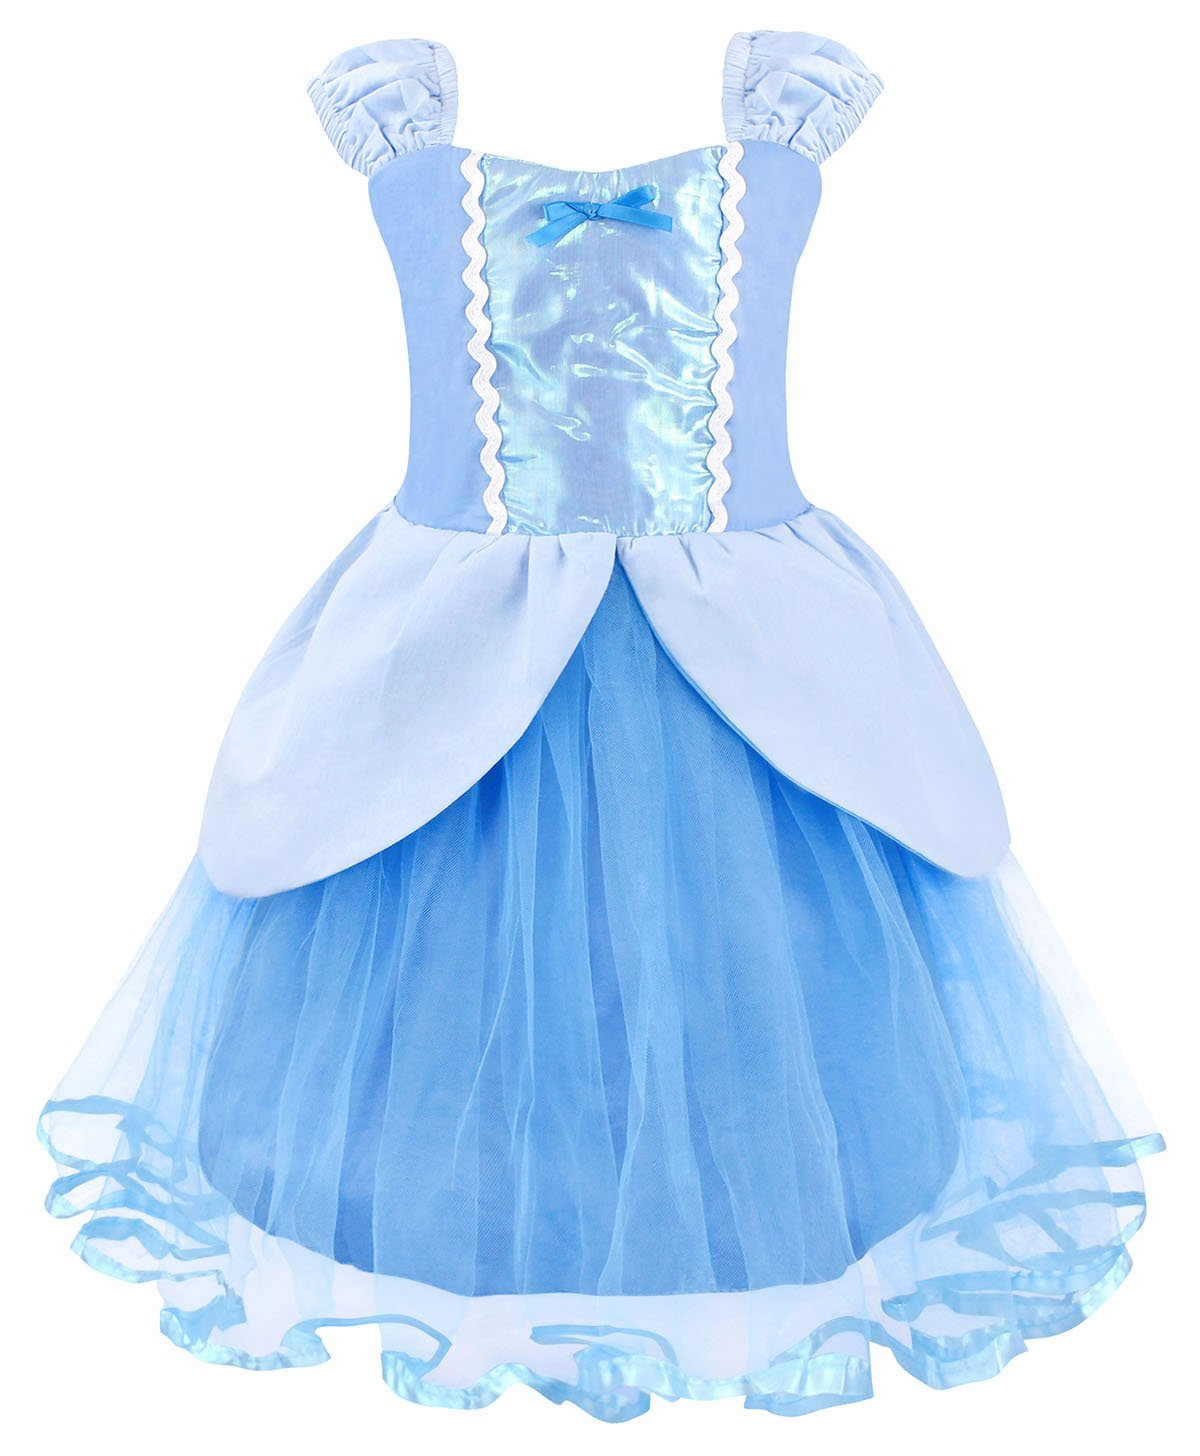 Cotrio Princess Cinderella Costume for Girls Halloween Cosplay Party Fancy Dress up Size 8 (130, Cinderella Tutu Dress)